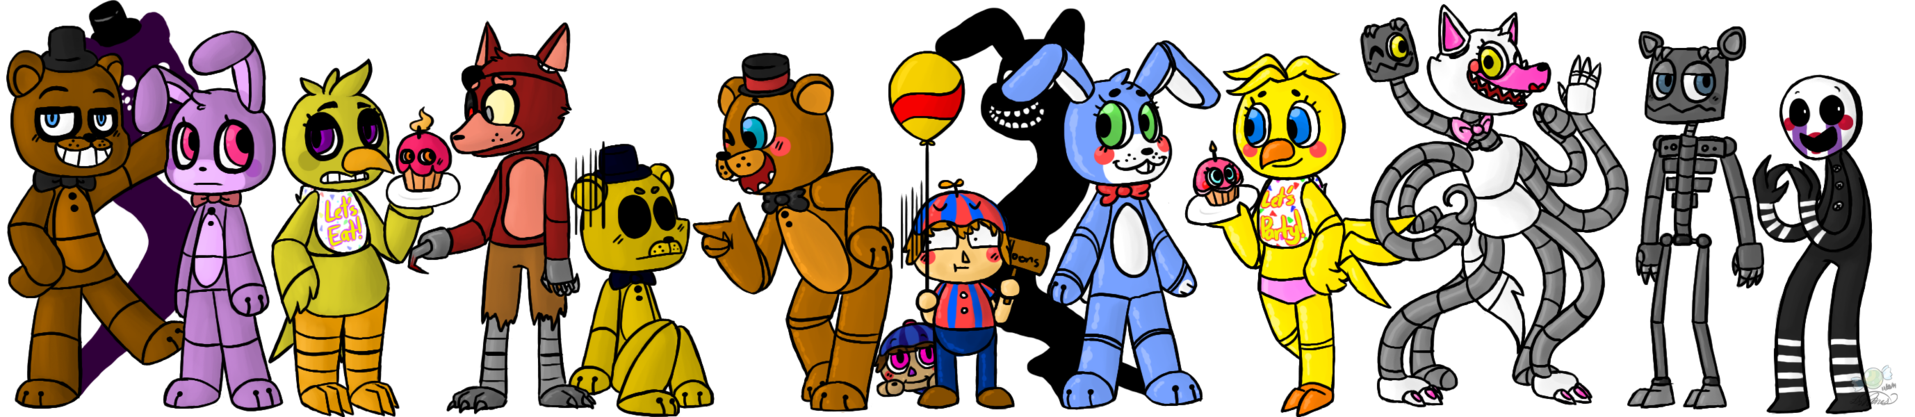 Free five night at freddys 3 coloring pages